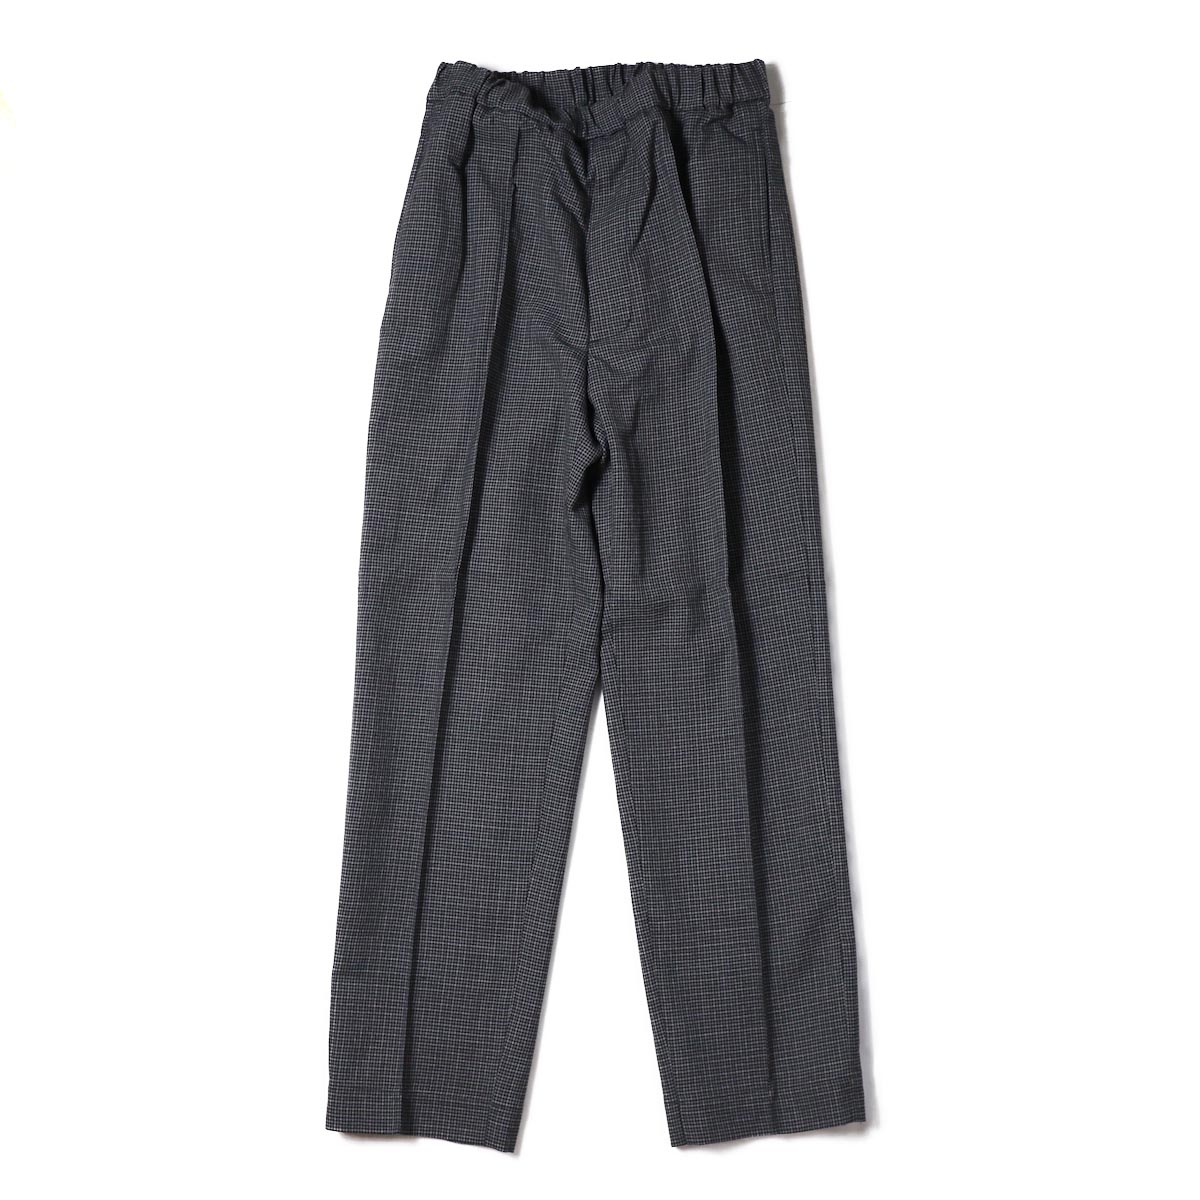 Kaptain Sunshine / Crease Tucked Easy Pants -Grey Hound